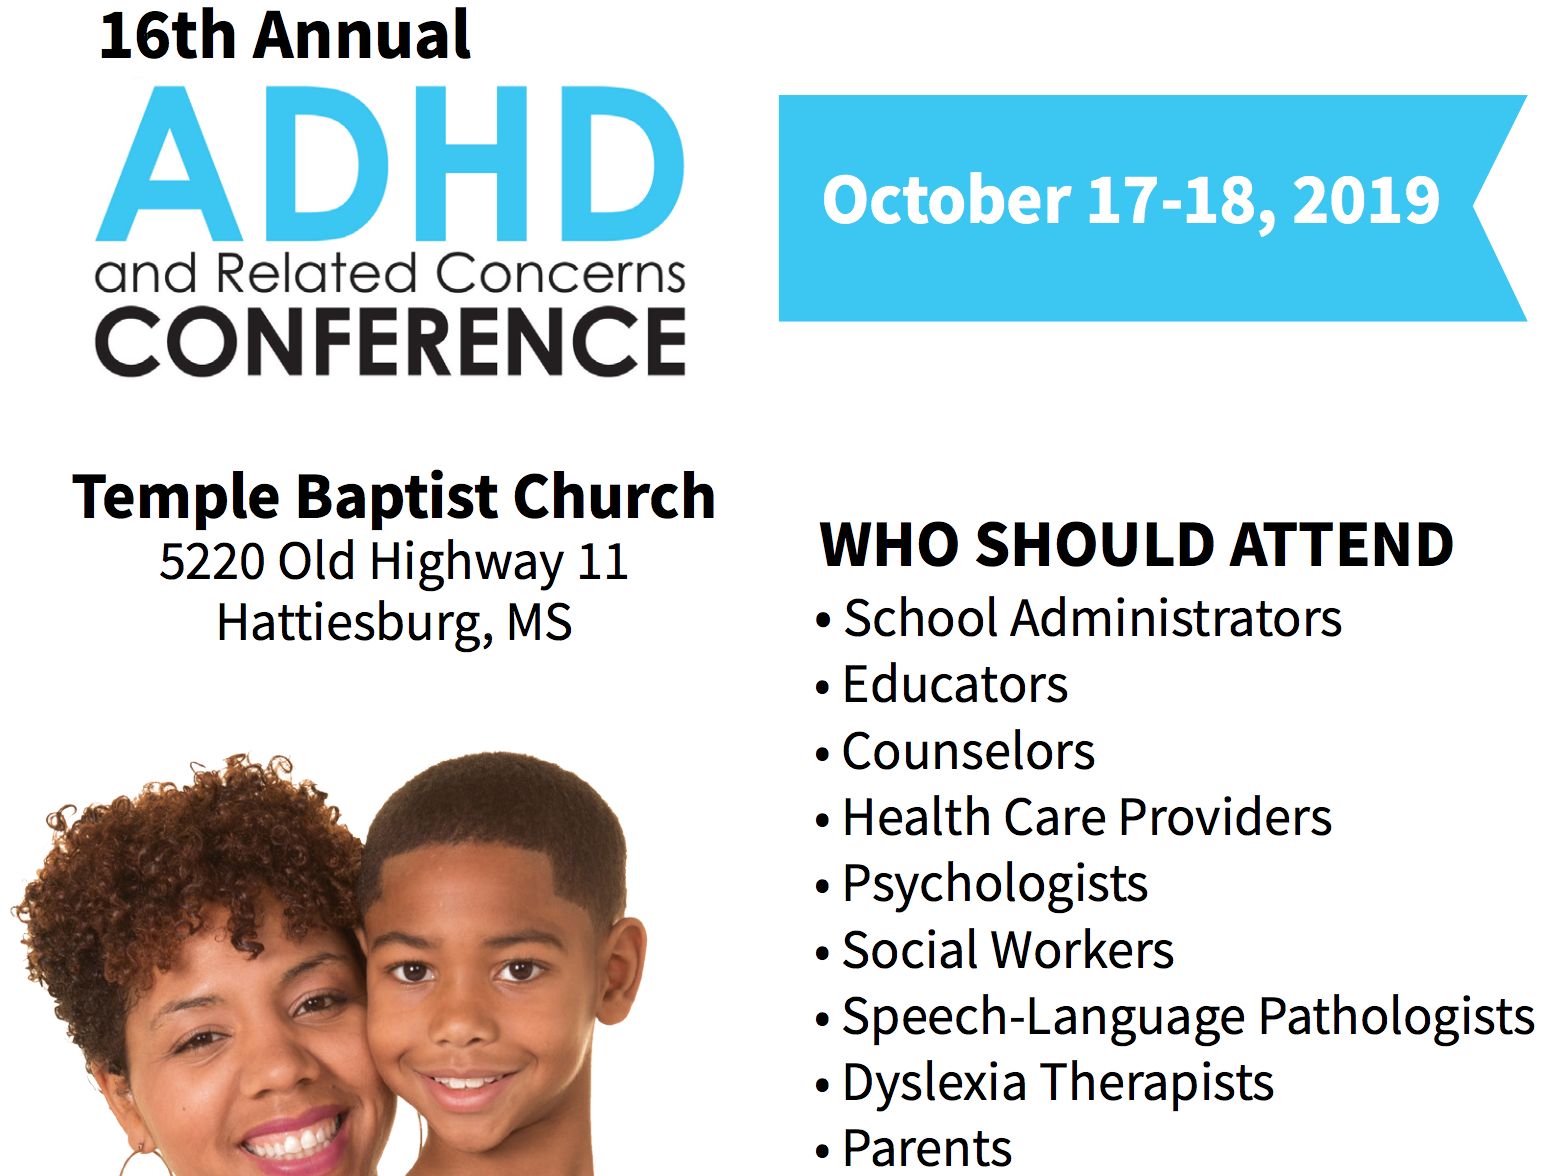 ADHD and Related Concerns Conference